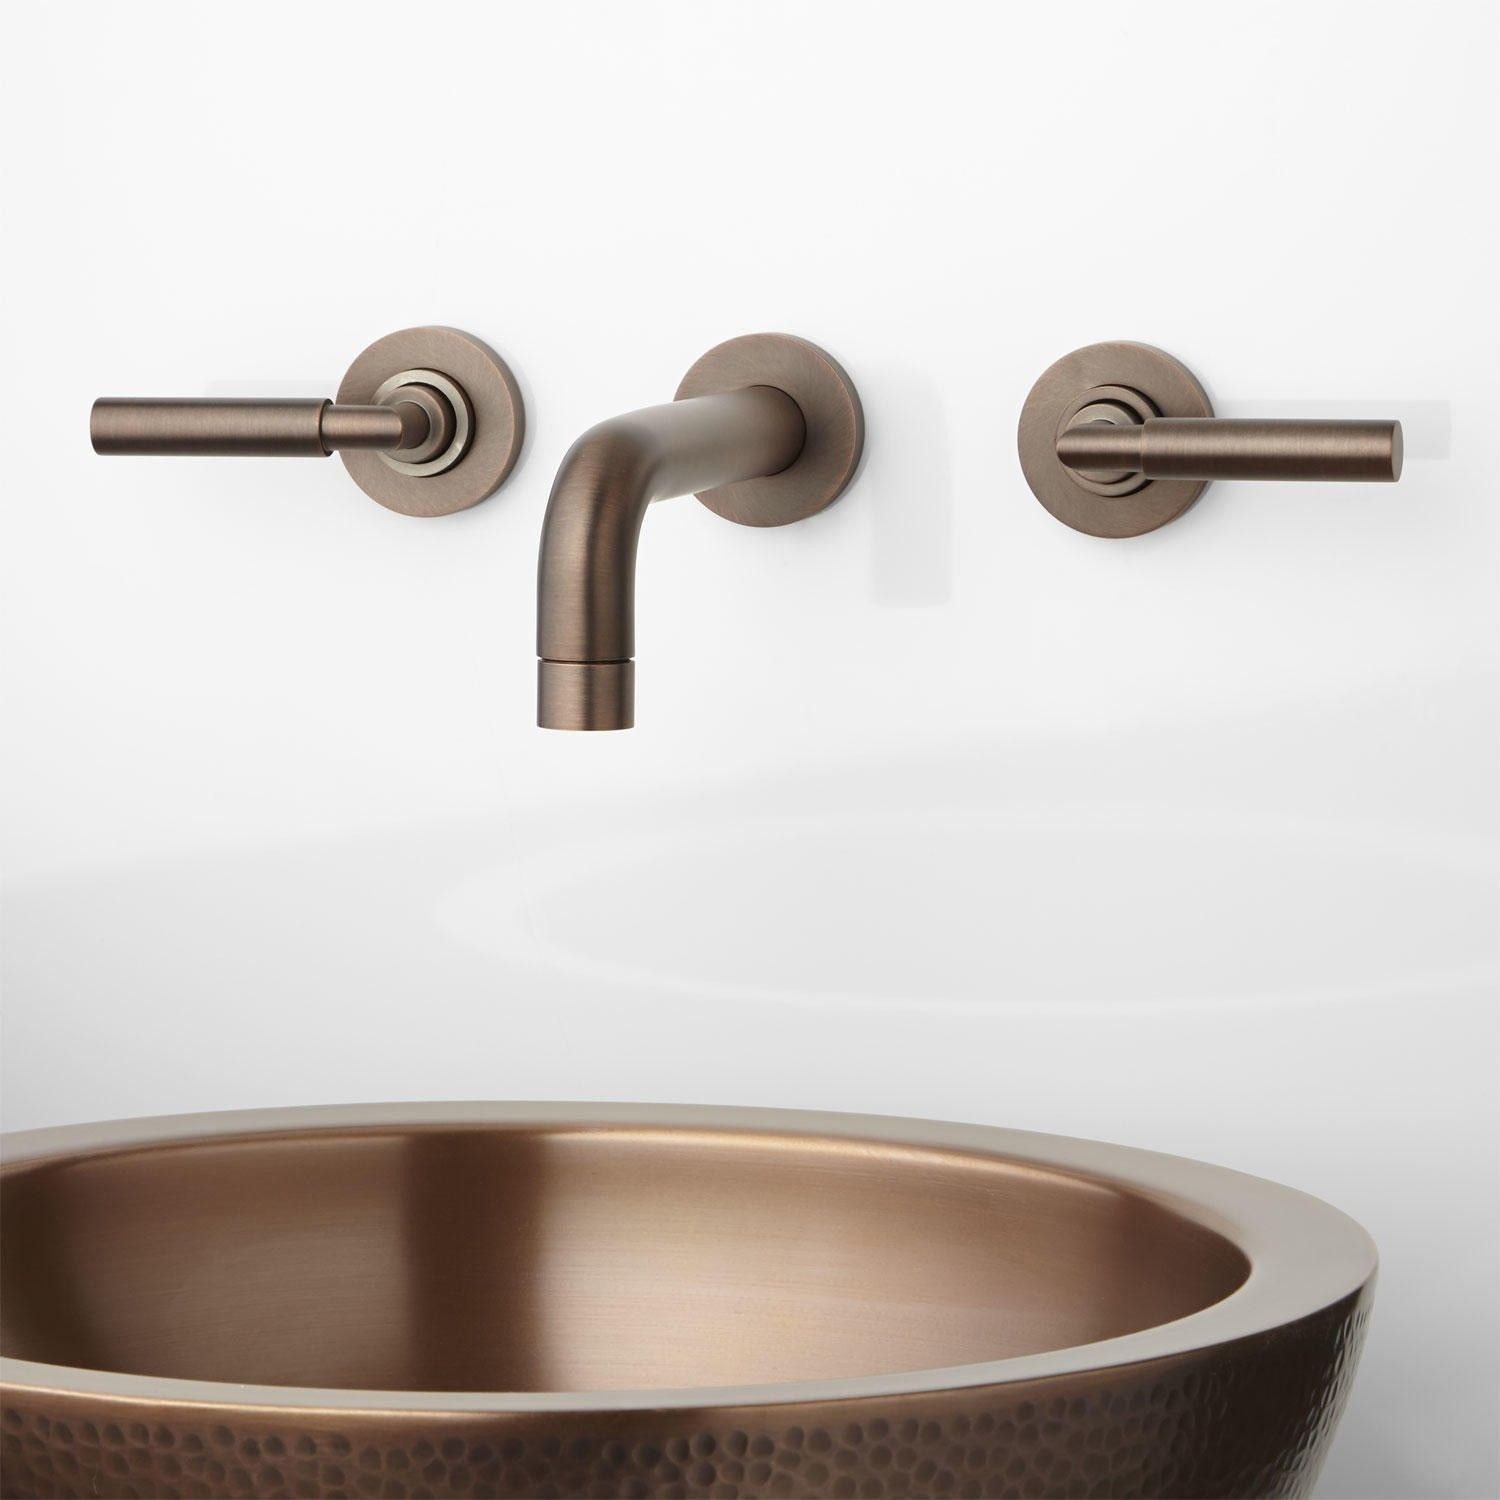 Wall Mounted Bathroom Faucets   http://bottomunion.com   Pinterest ...